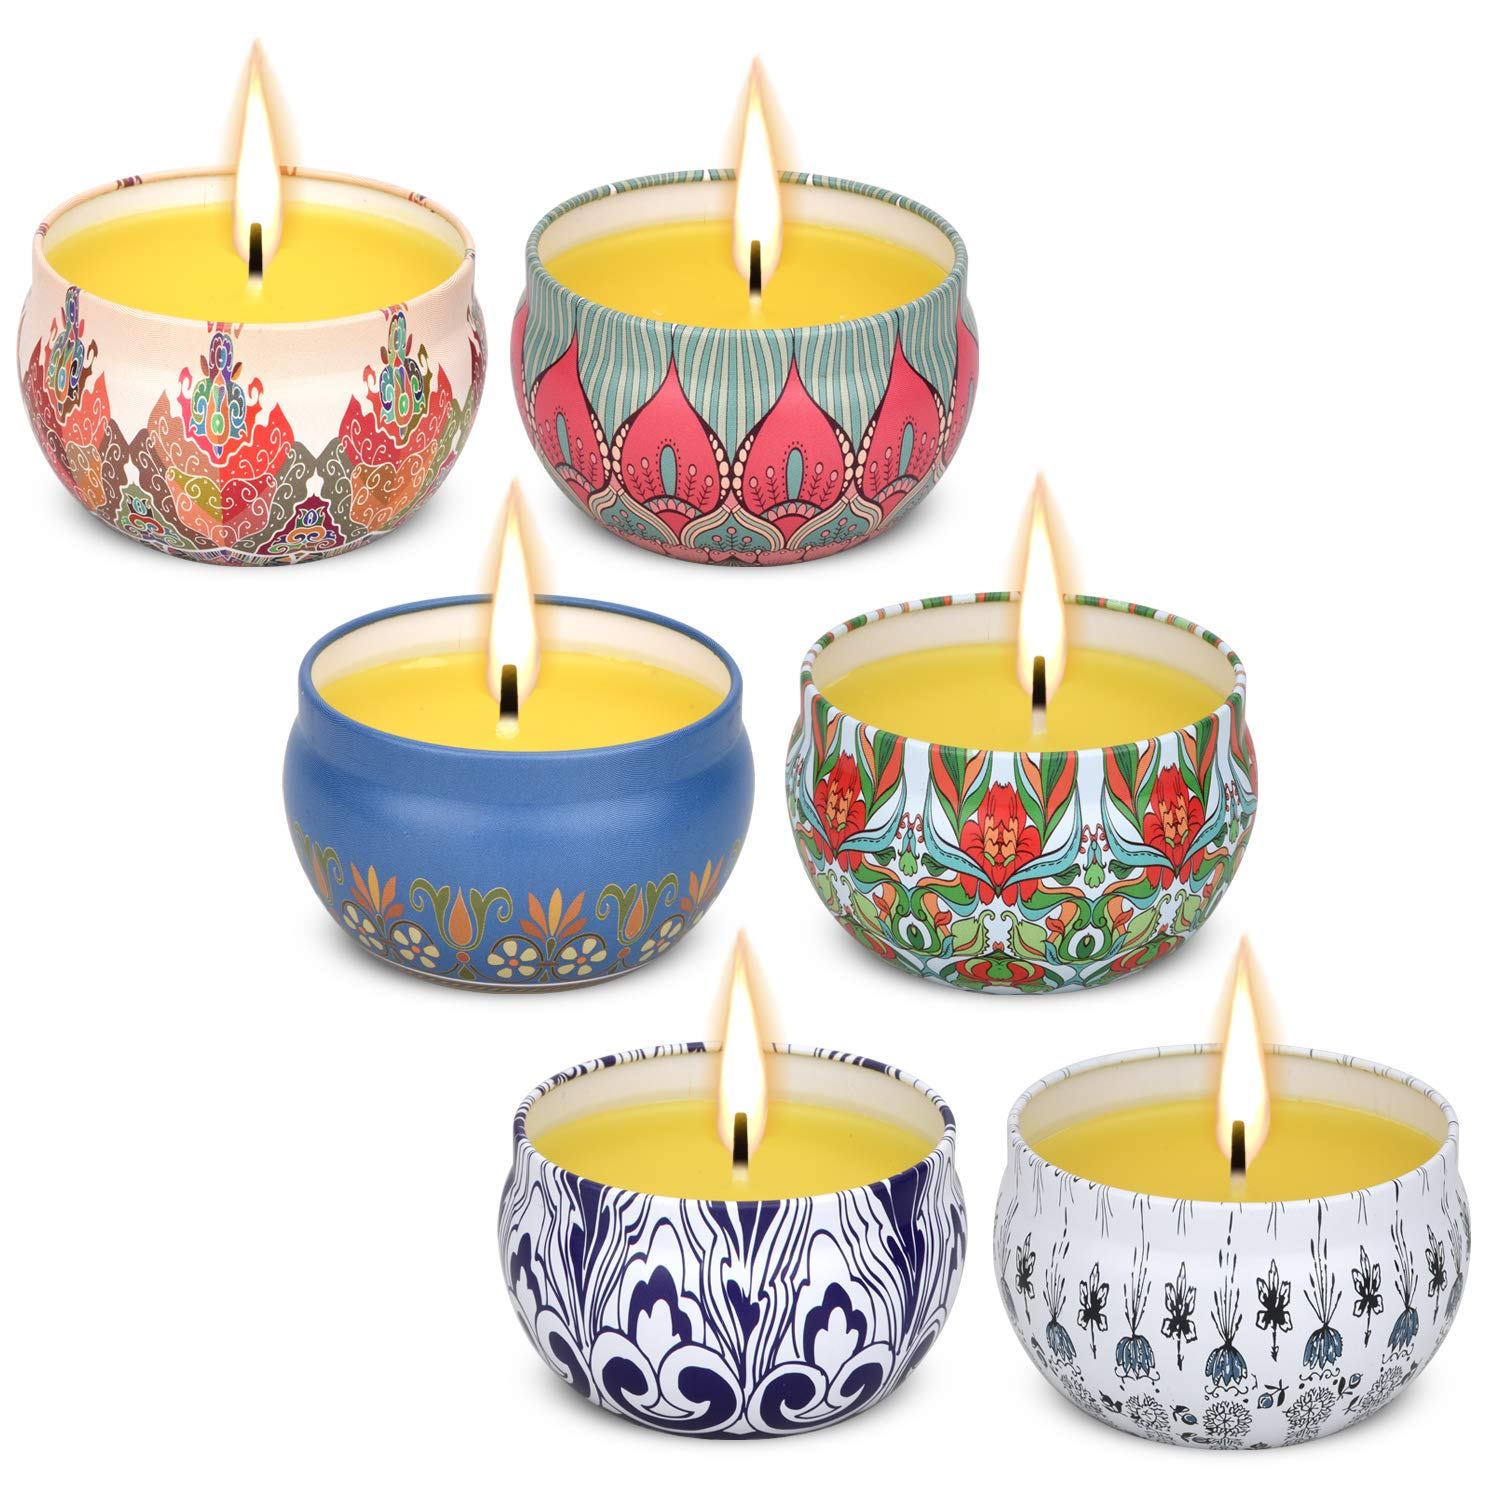 Vickiss Citronella Scented Candles Set 6 Natural Soy Wax Travel Tin 2.5oz, Outdoor and Indoor